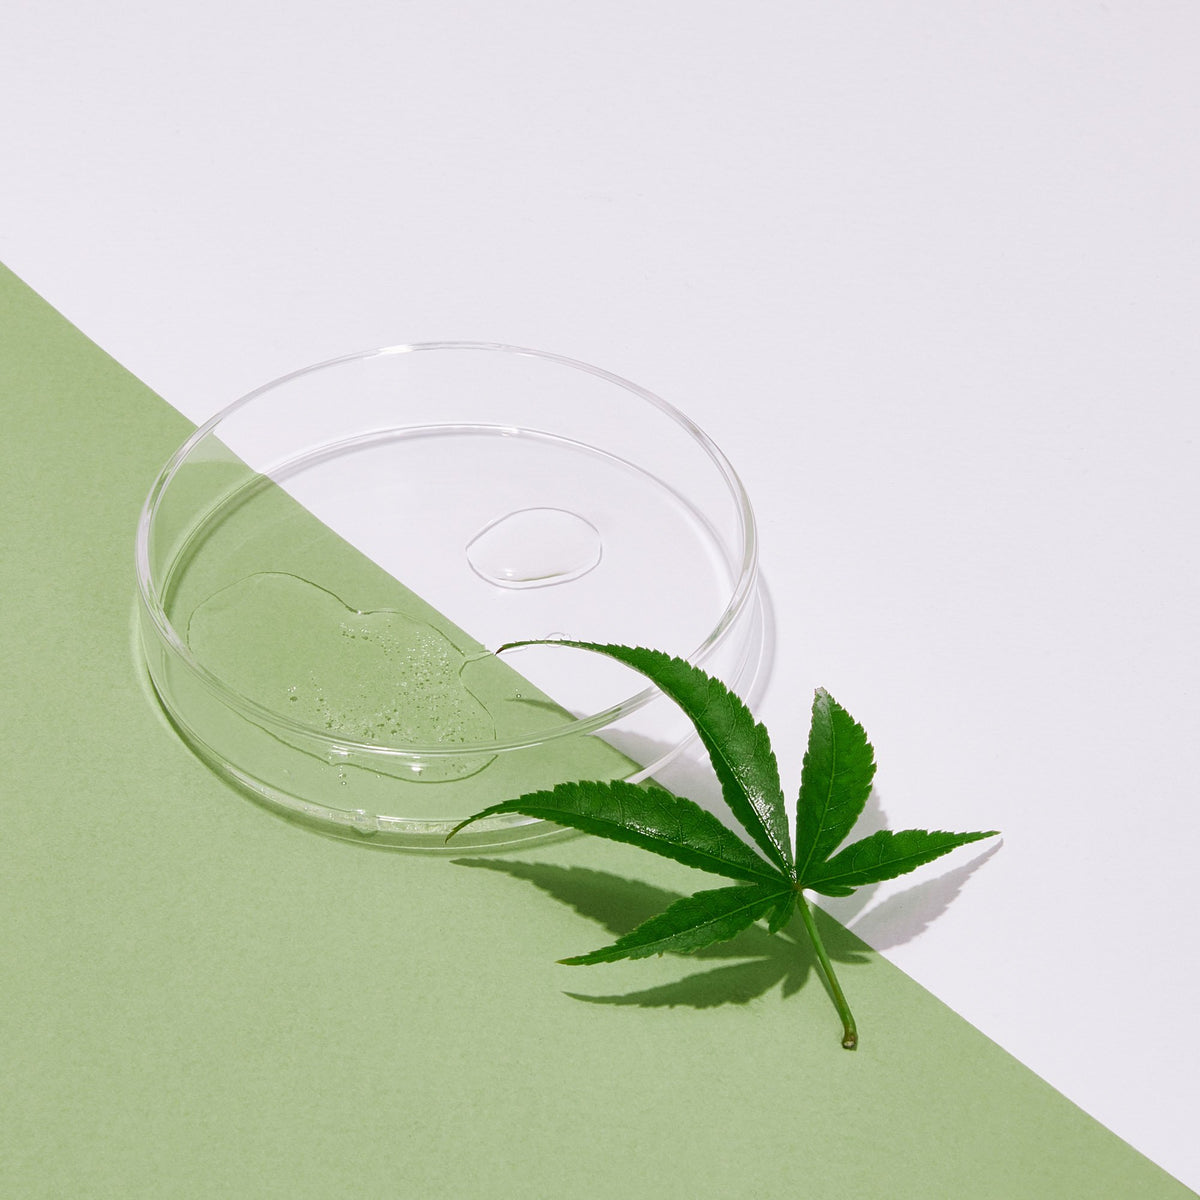 texture image of Andalou Naturals CannaCell Beauty Oil with a hemp leaf